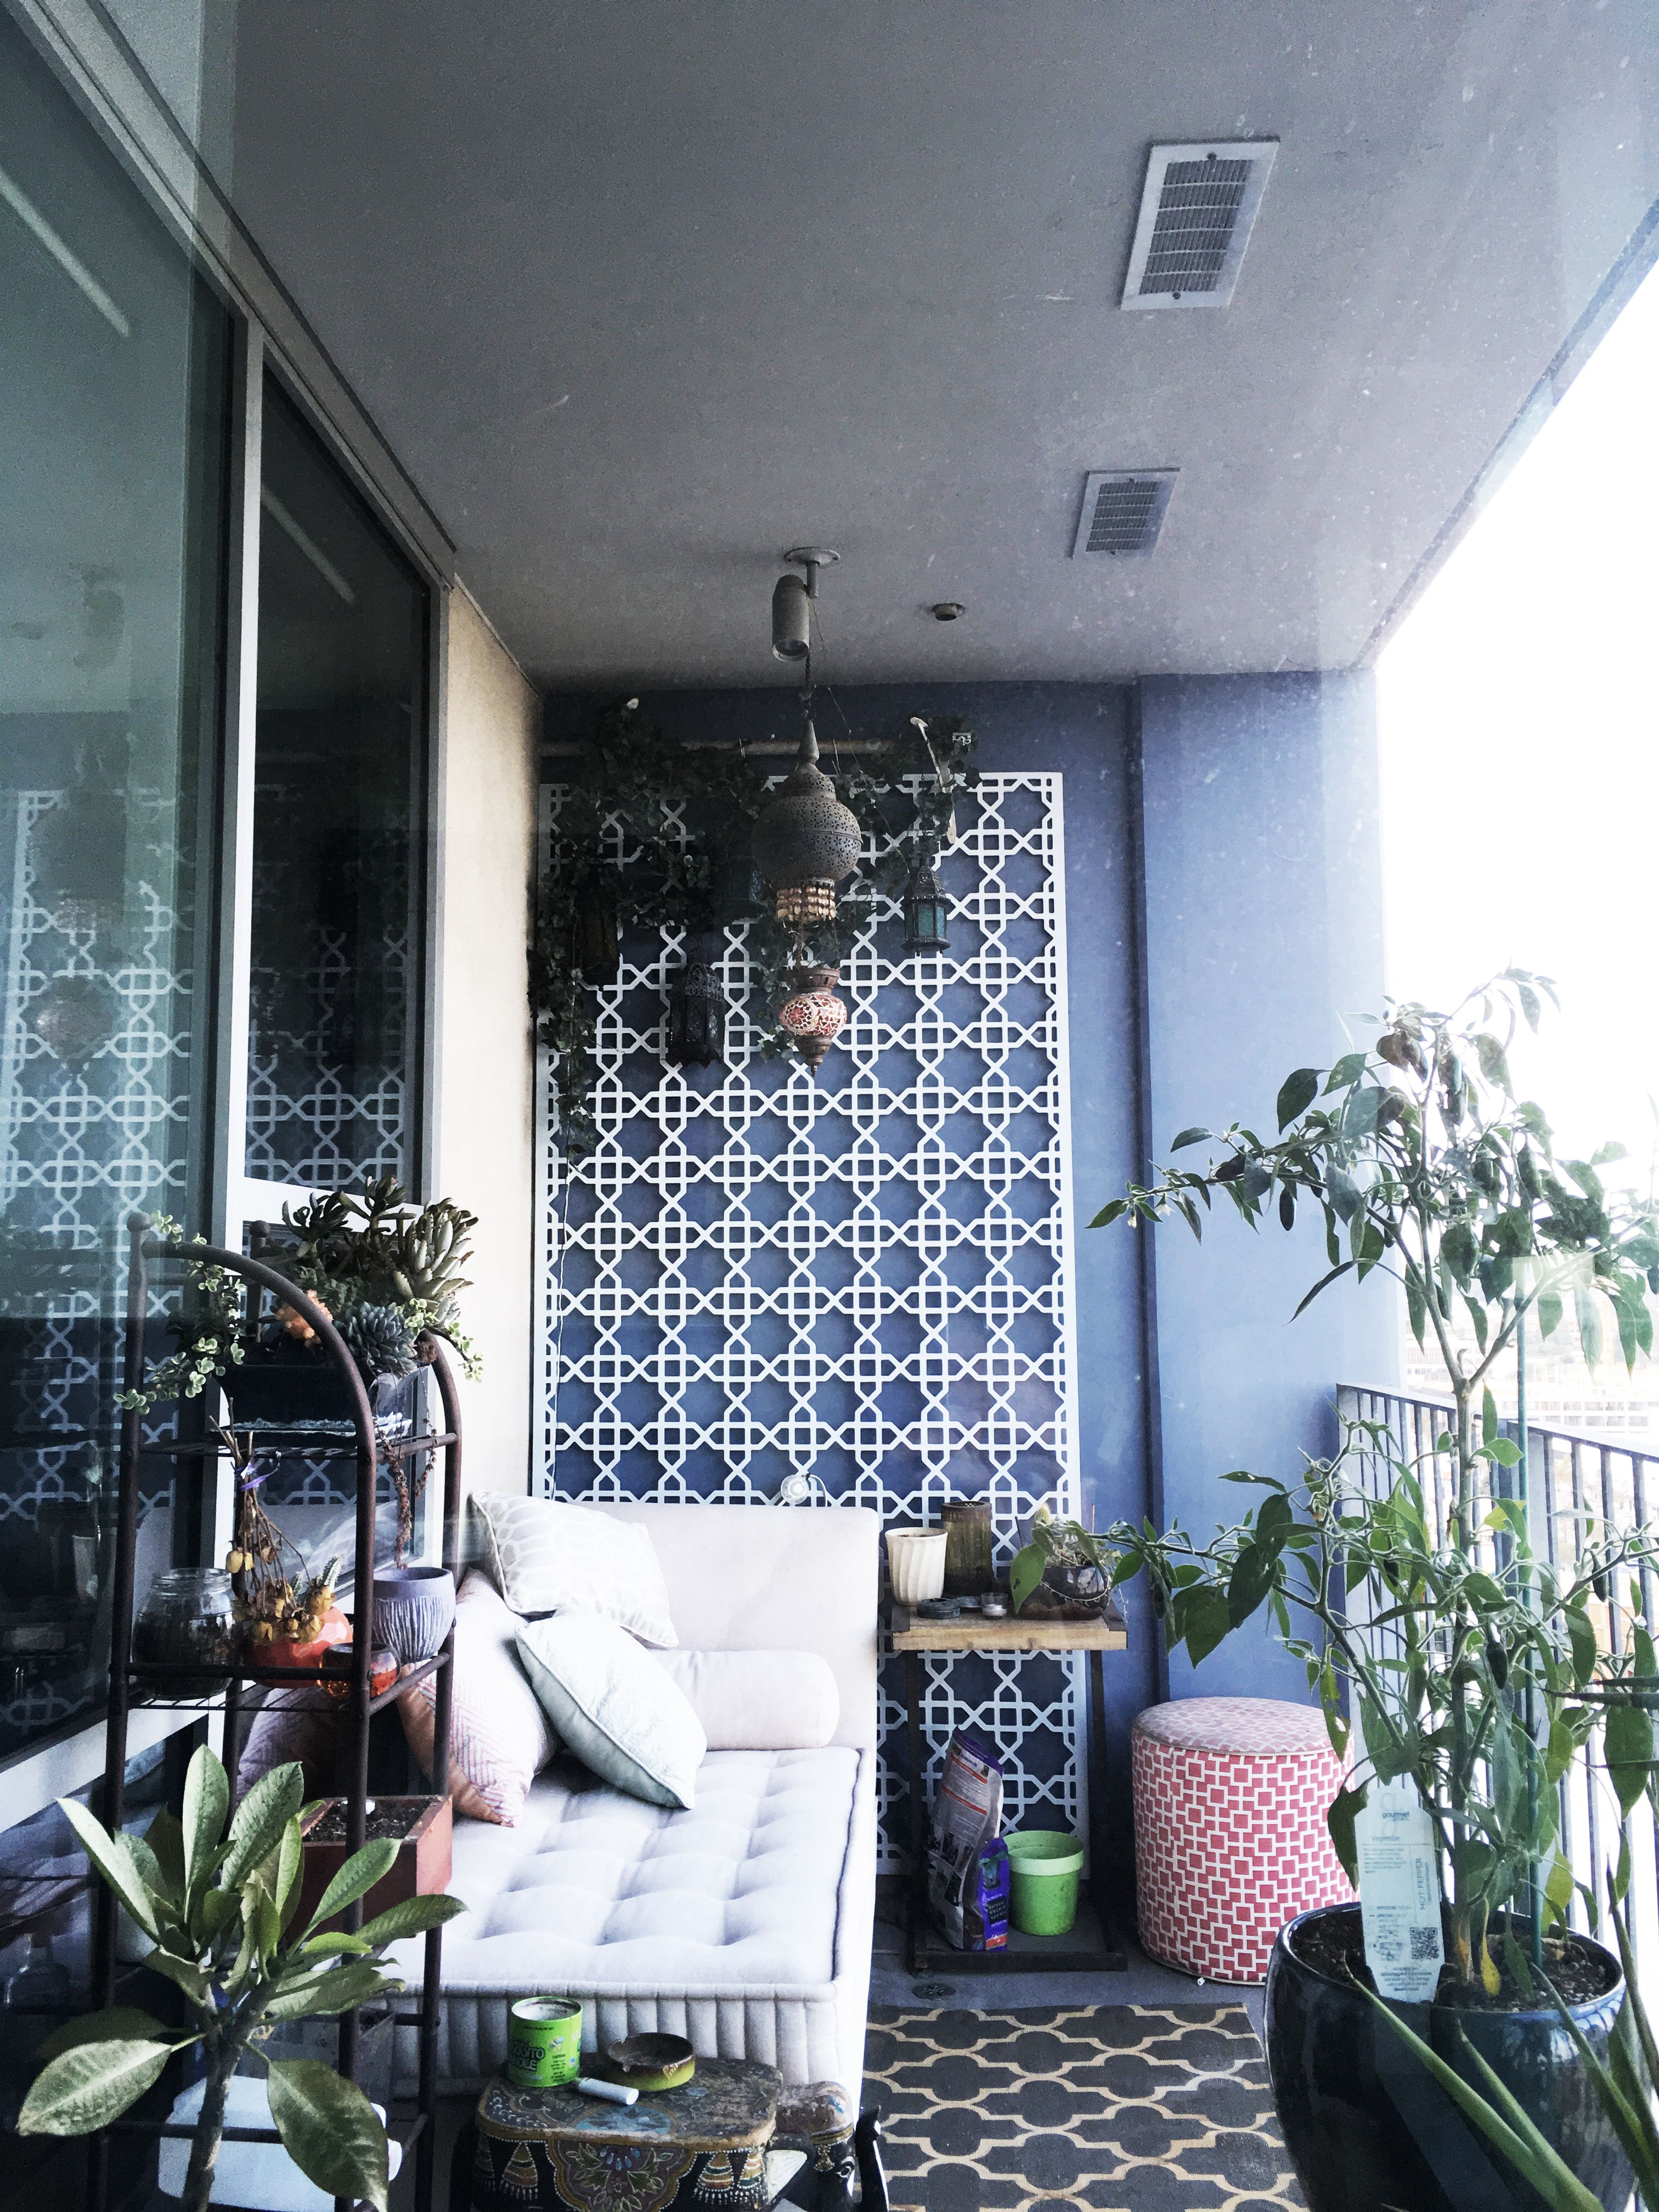 Moroccan Inspired Balcony. Lamps Plants Chaise Lounge